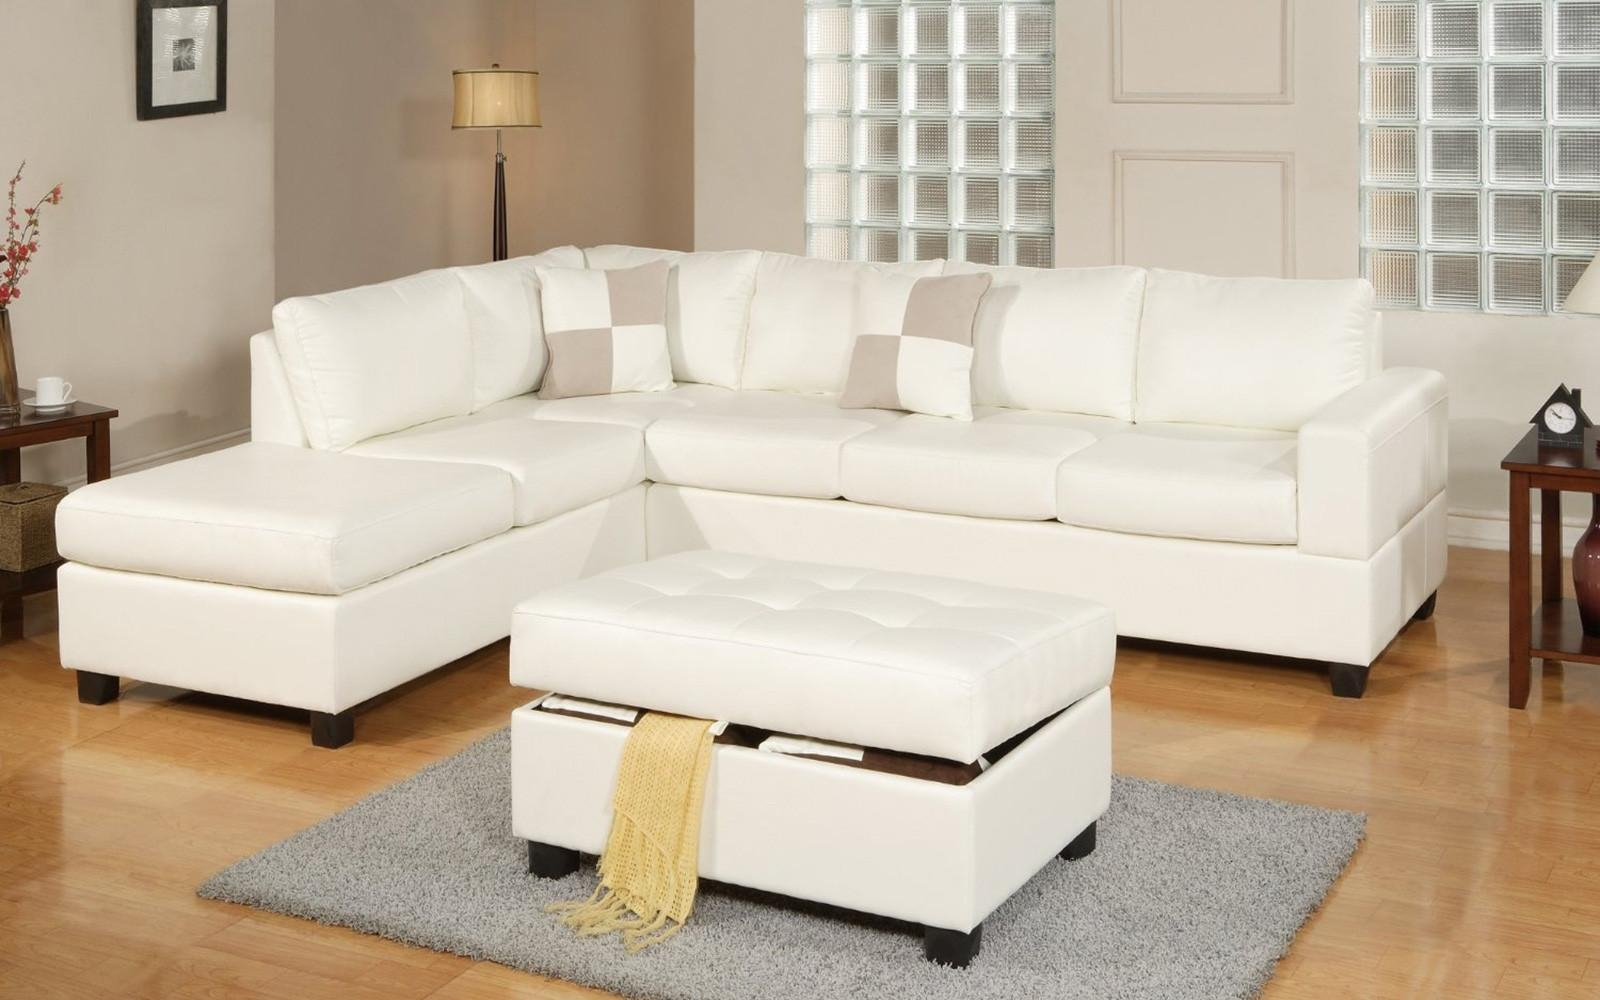 new sofa for sale pb comfort reviews 21 best ideas white sectional